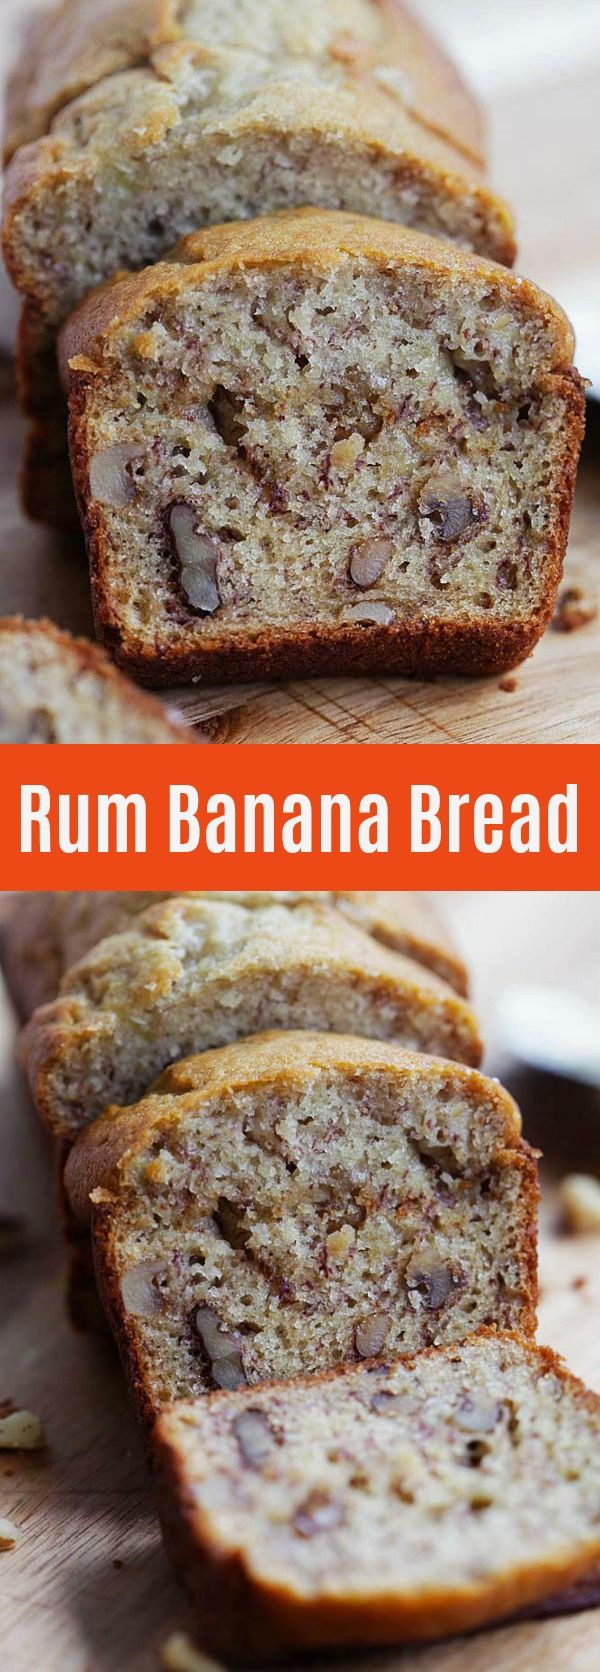 Rum Banana Bread - Turn traditional recipe into something even better with rum. This recipe yields the best and super moist banana bread ever | rasamalaysia.com